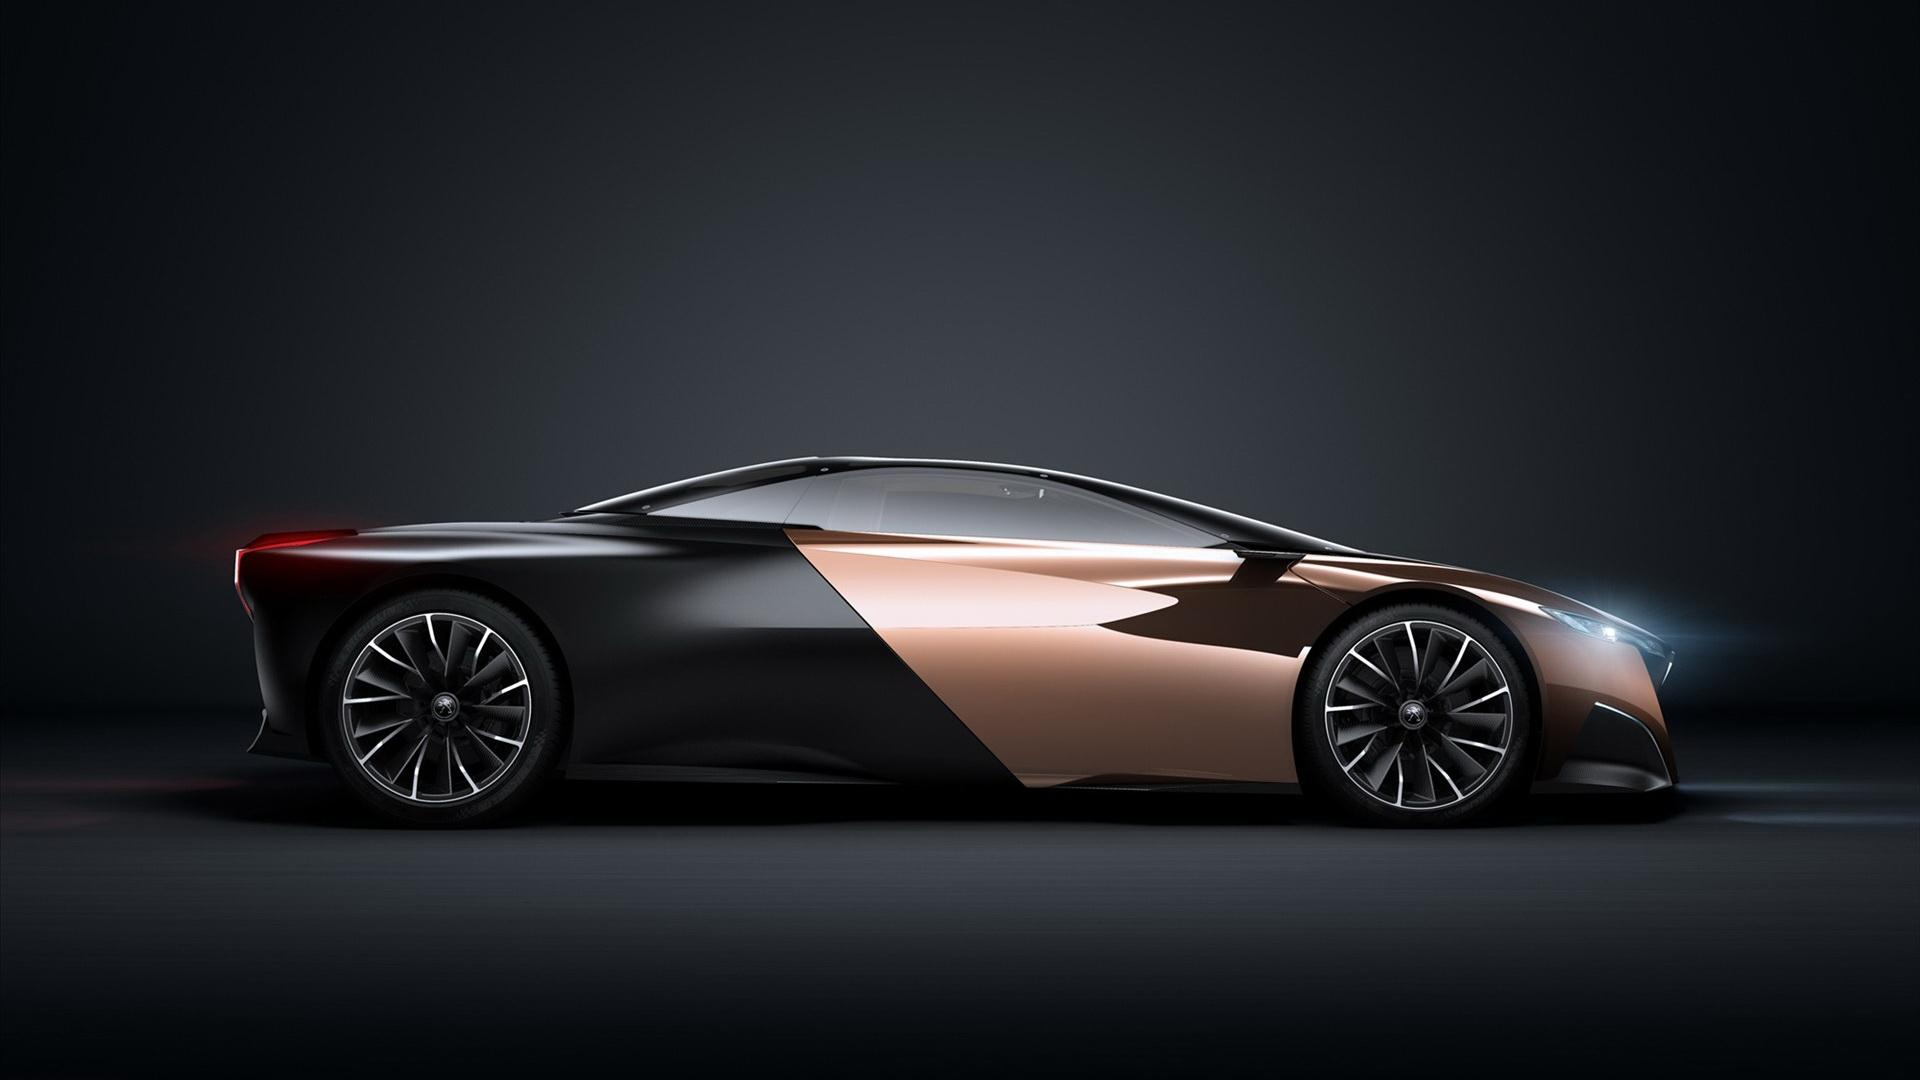 Peugeot onyx concept car HD Wallpapers 1920x1080 1080p hd wallpapers